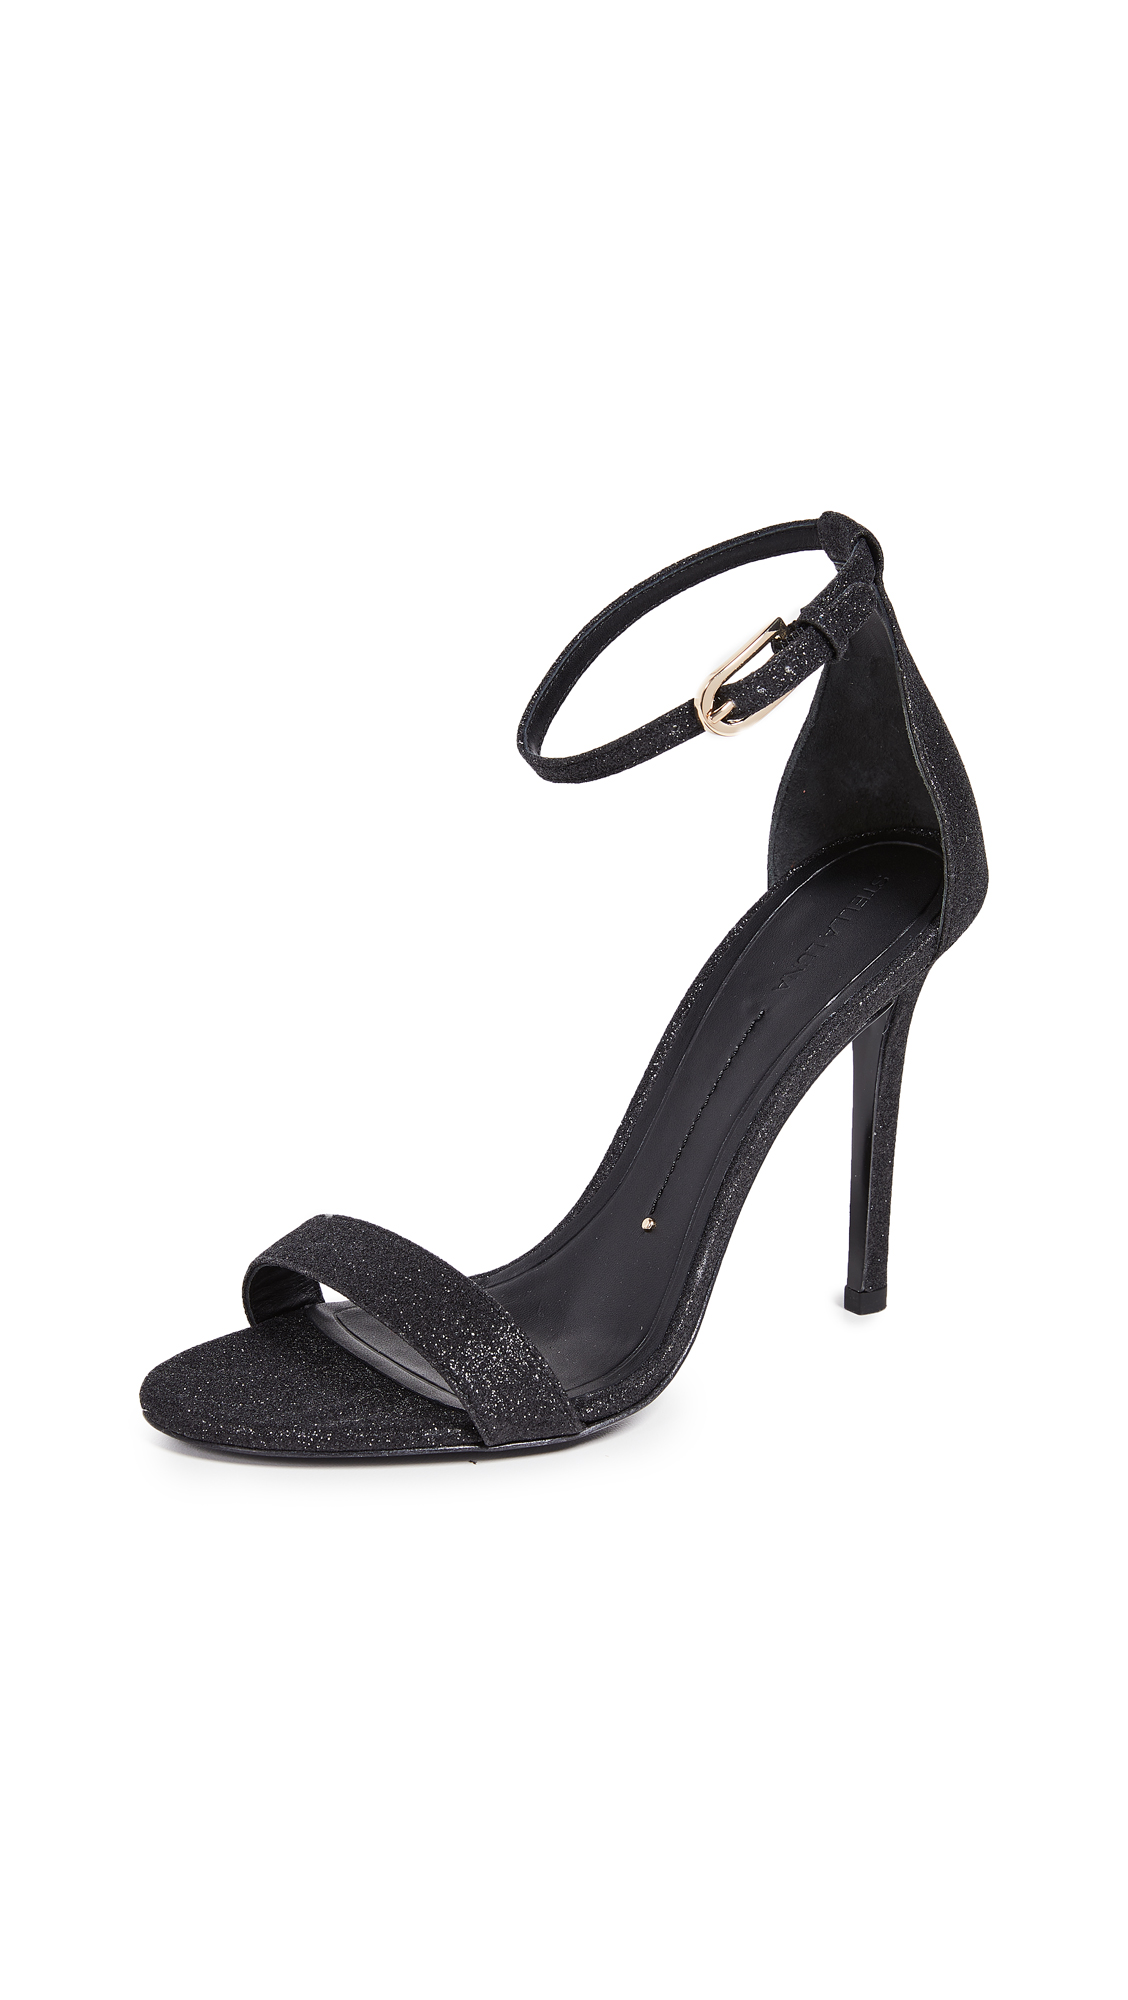 Stella Luna Red Carpet Sandals - Black